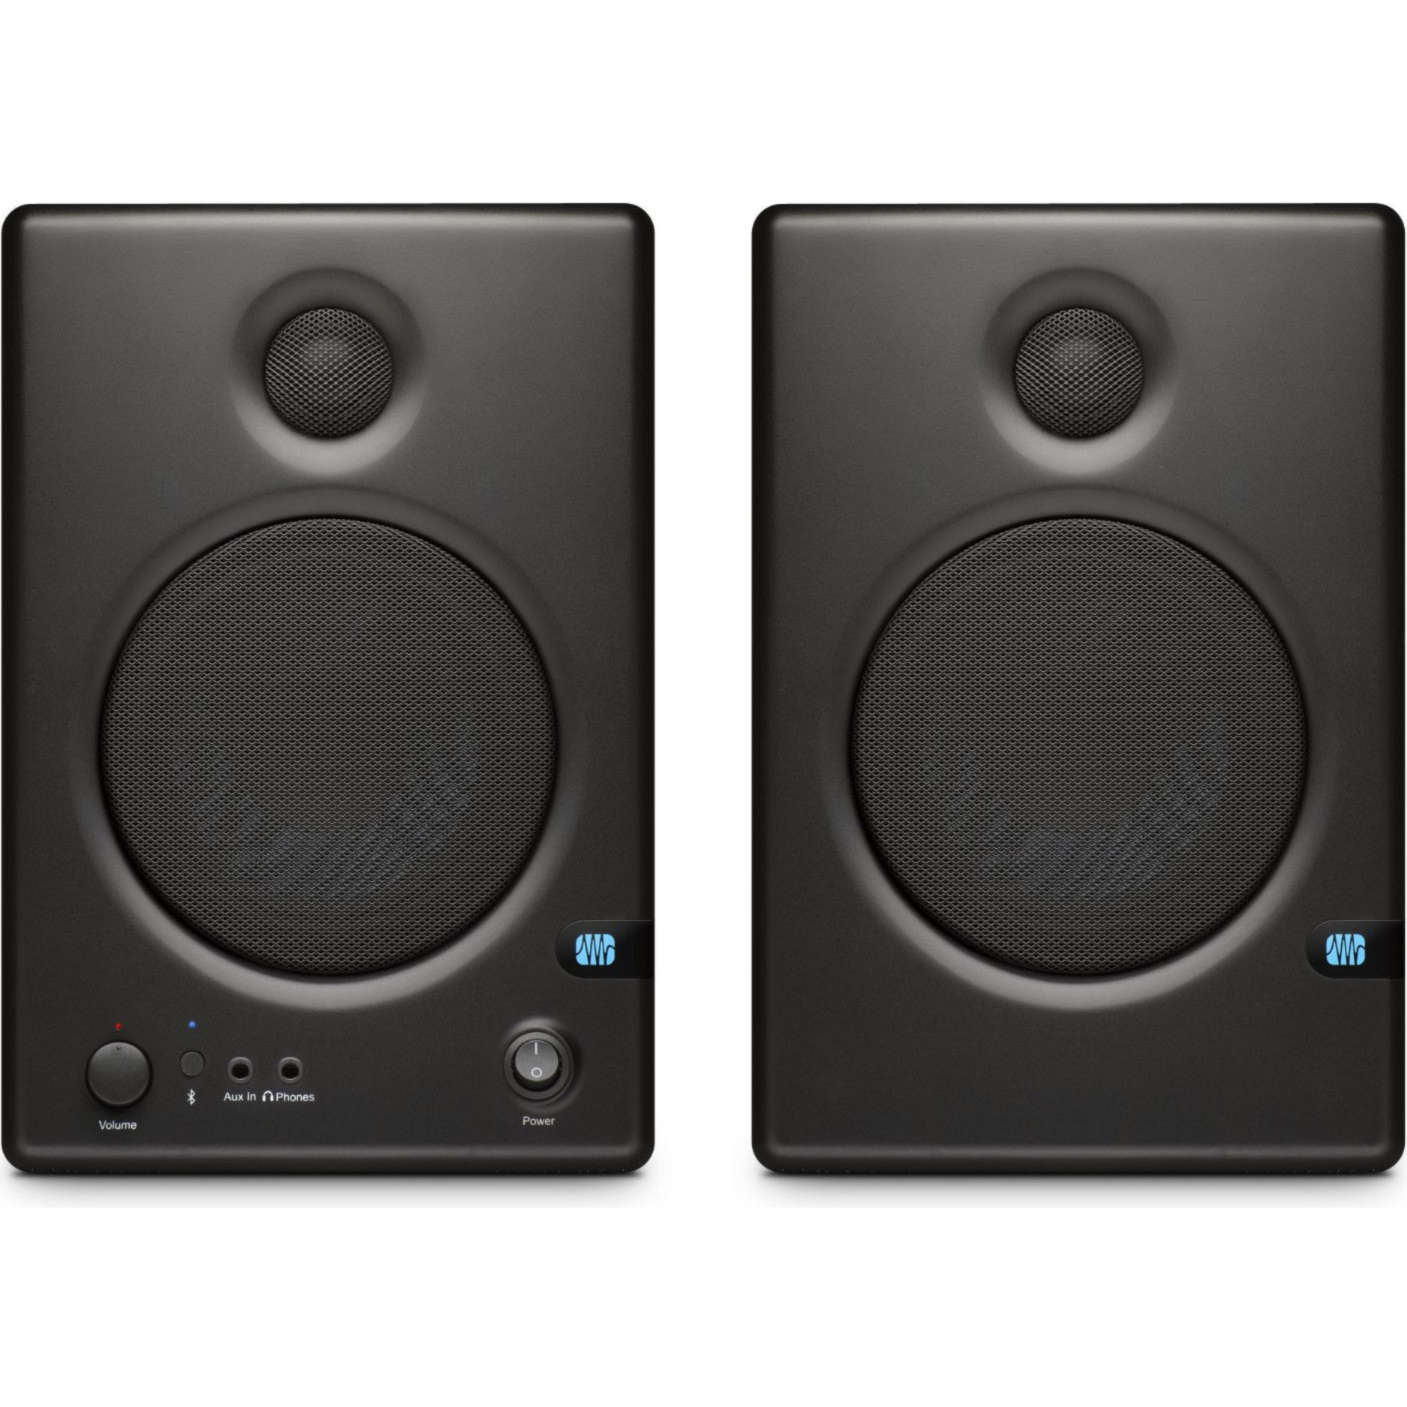 presonus ceres 4 5 enceinte pc presonus sur. Black Bedroom Furniture Sets. Home Design Ideas